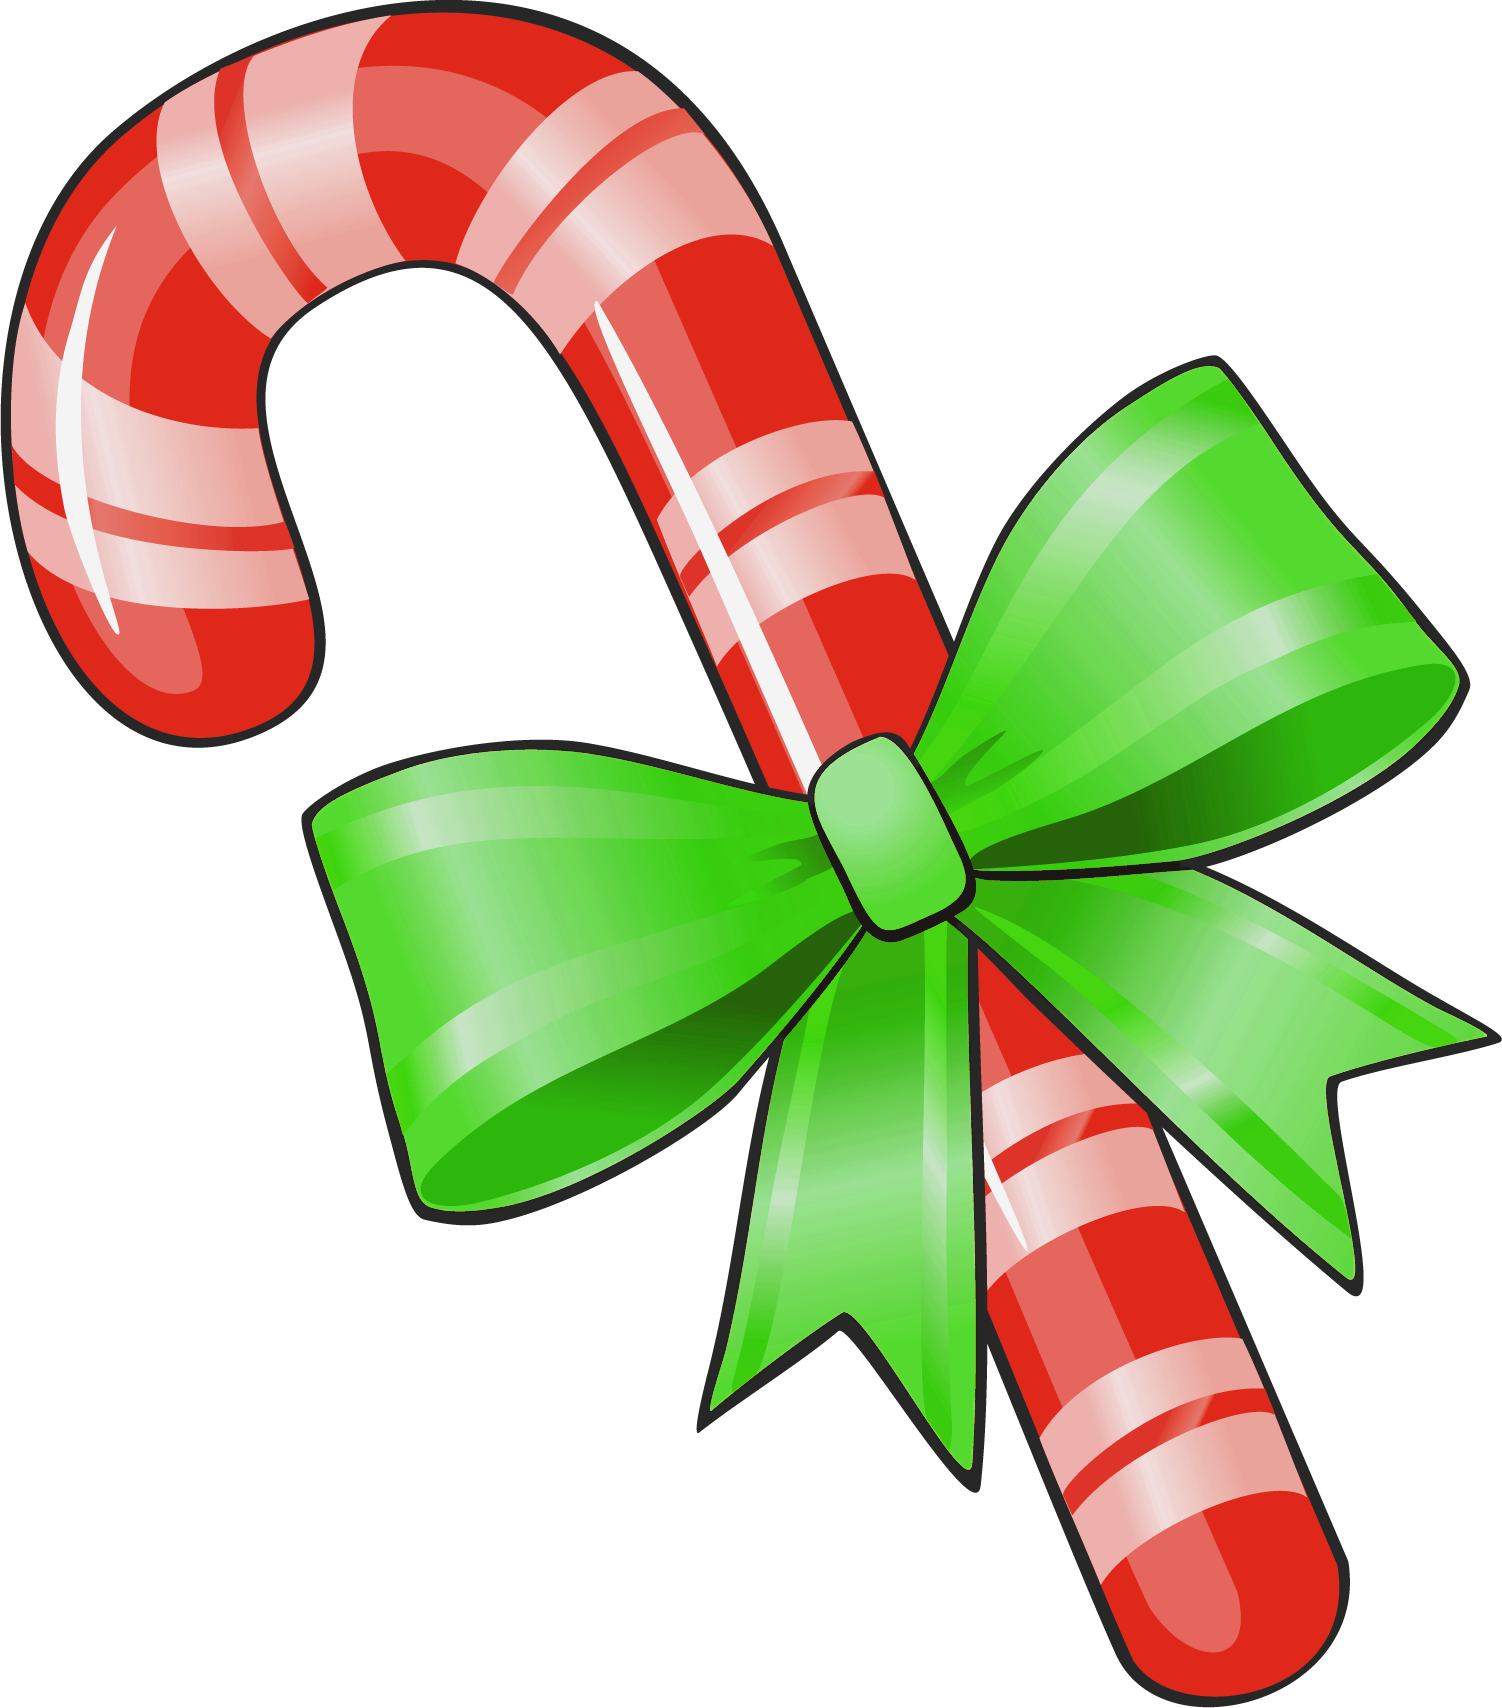 Candy cane heart clipart free image library download Transparent Christmas Candy Cane with Green Bow PNG Clipart ... image library download